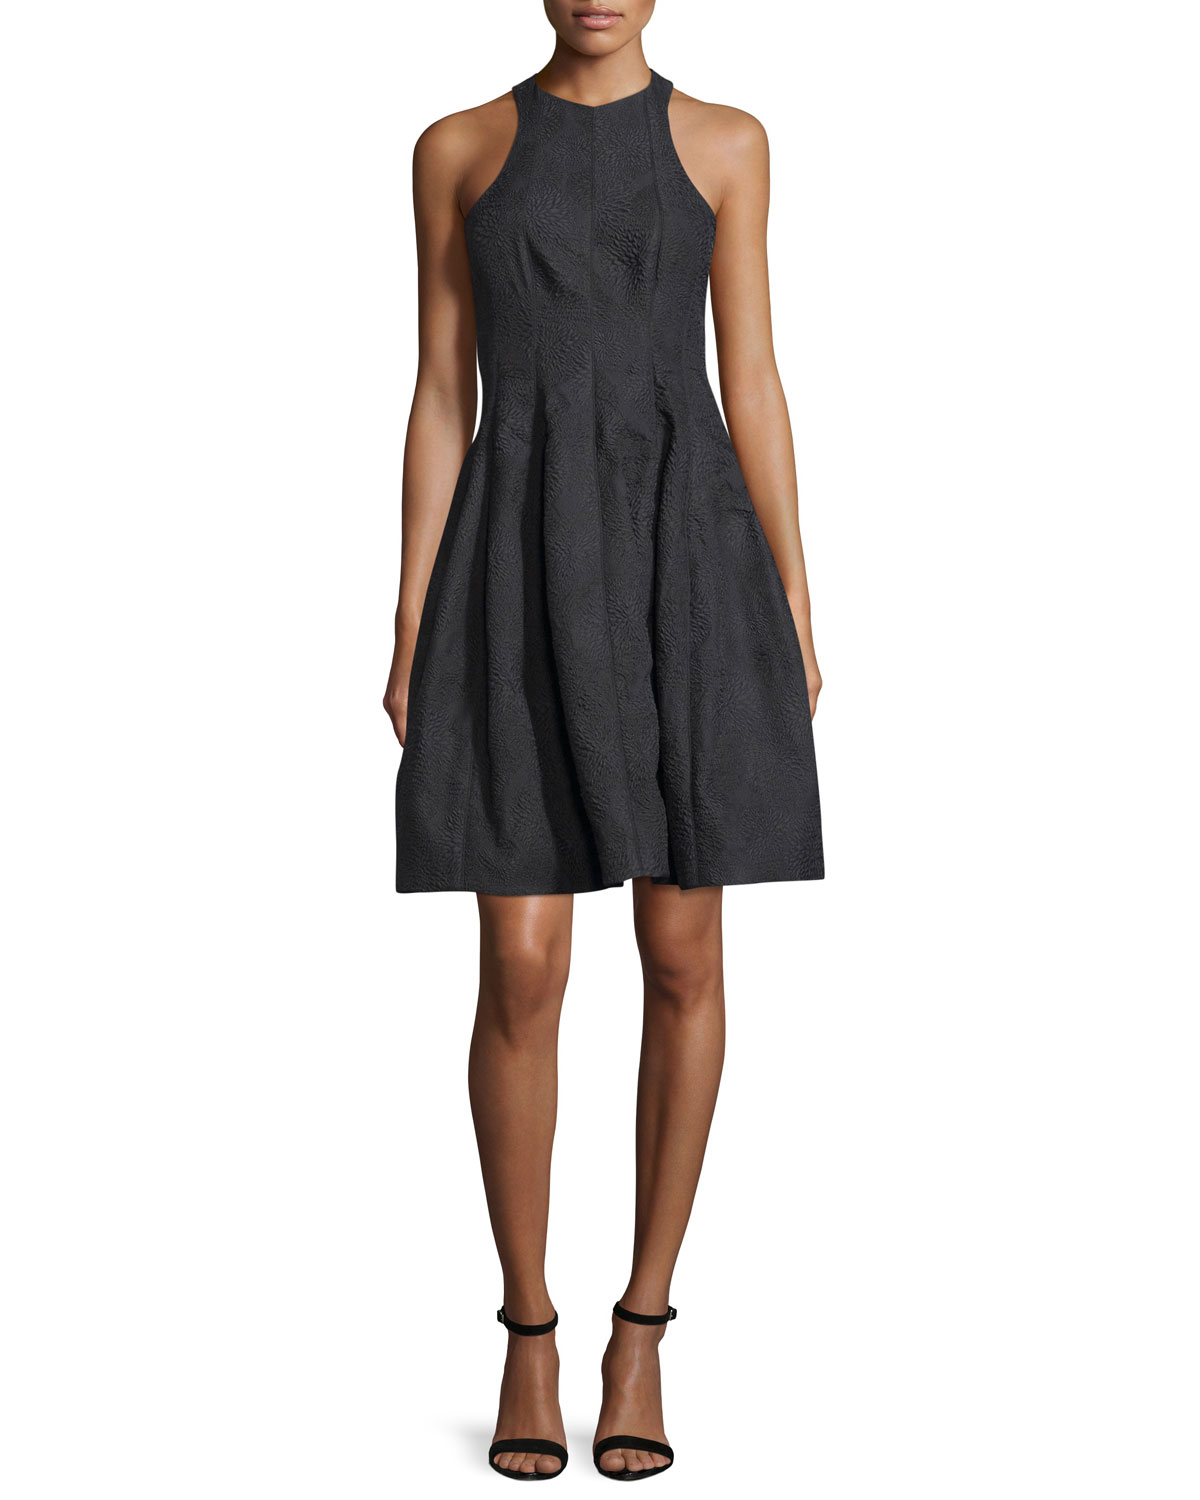 2b1b18977dc1 Halston Heritage Paneled Jacquard Fit-and-Flare Cocktail Dress, Black